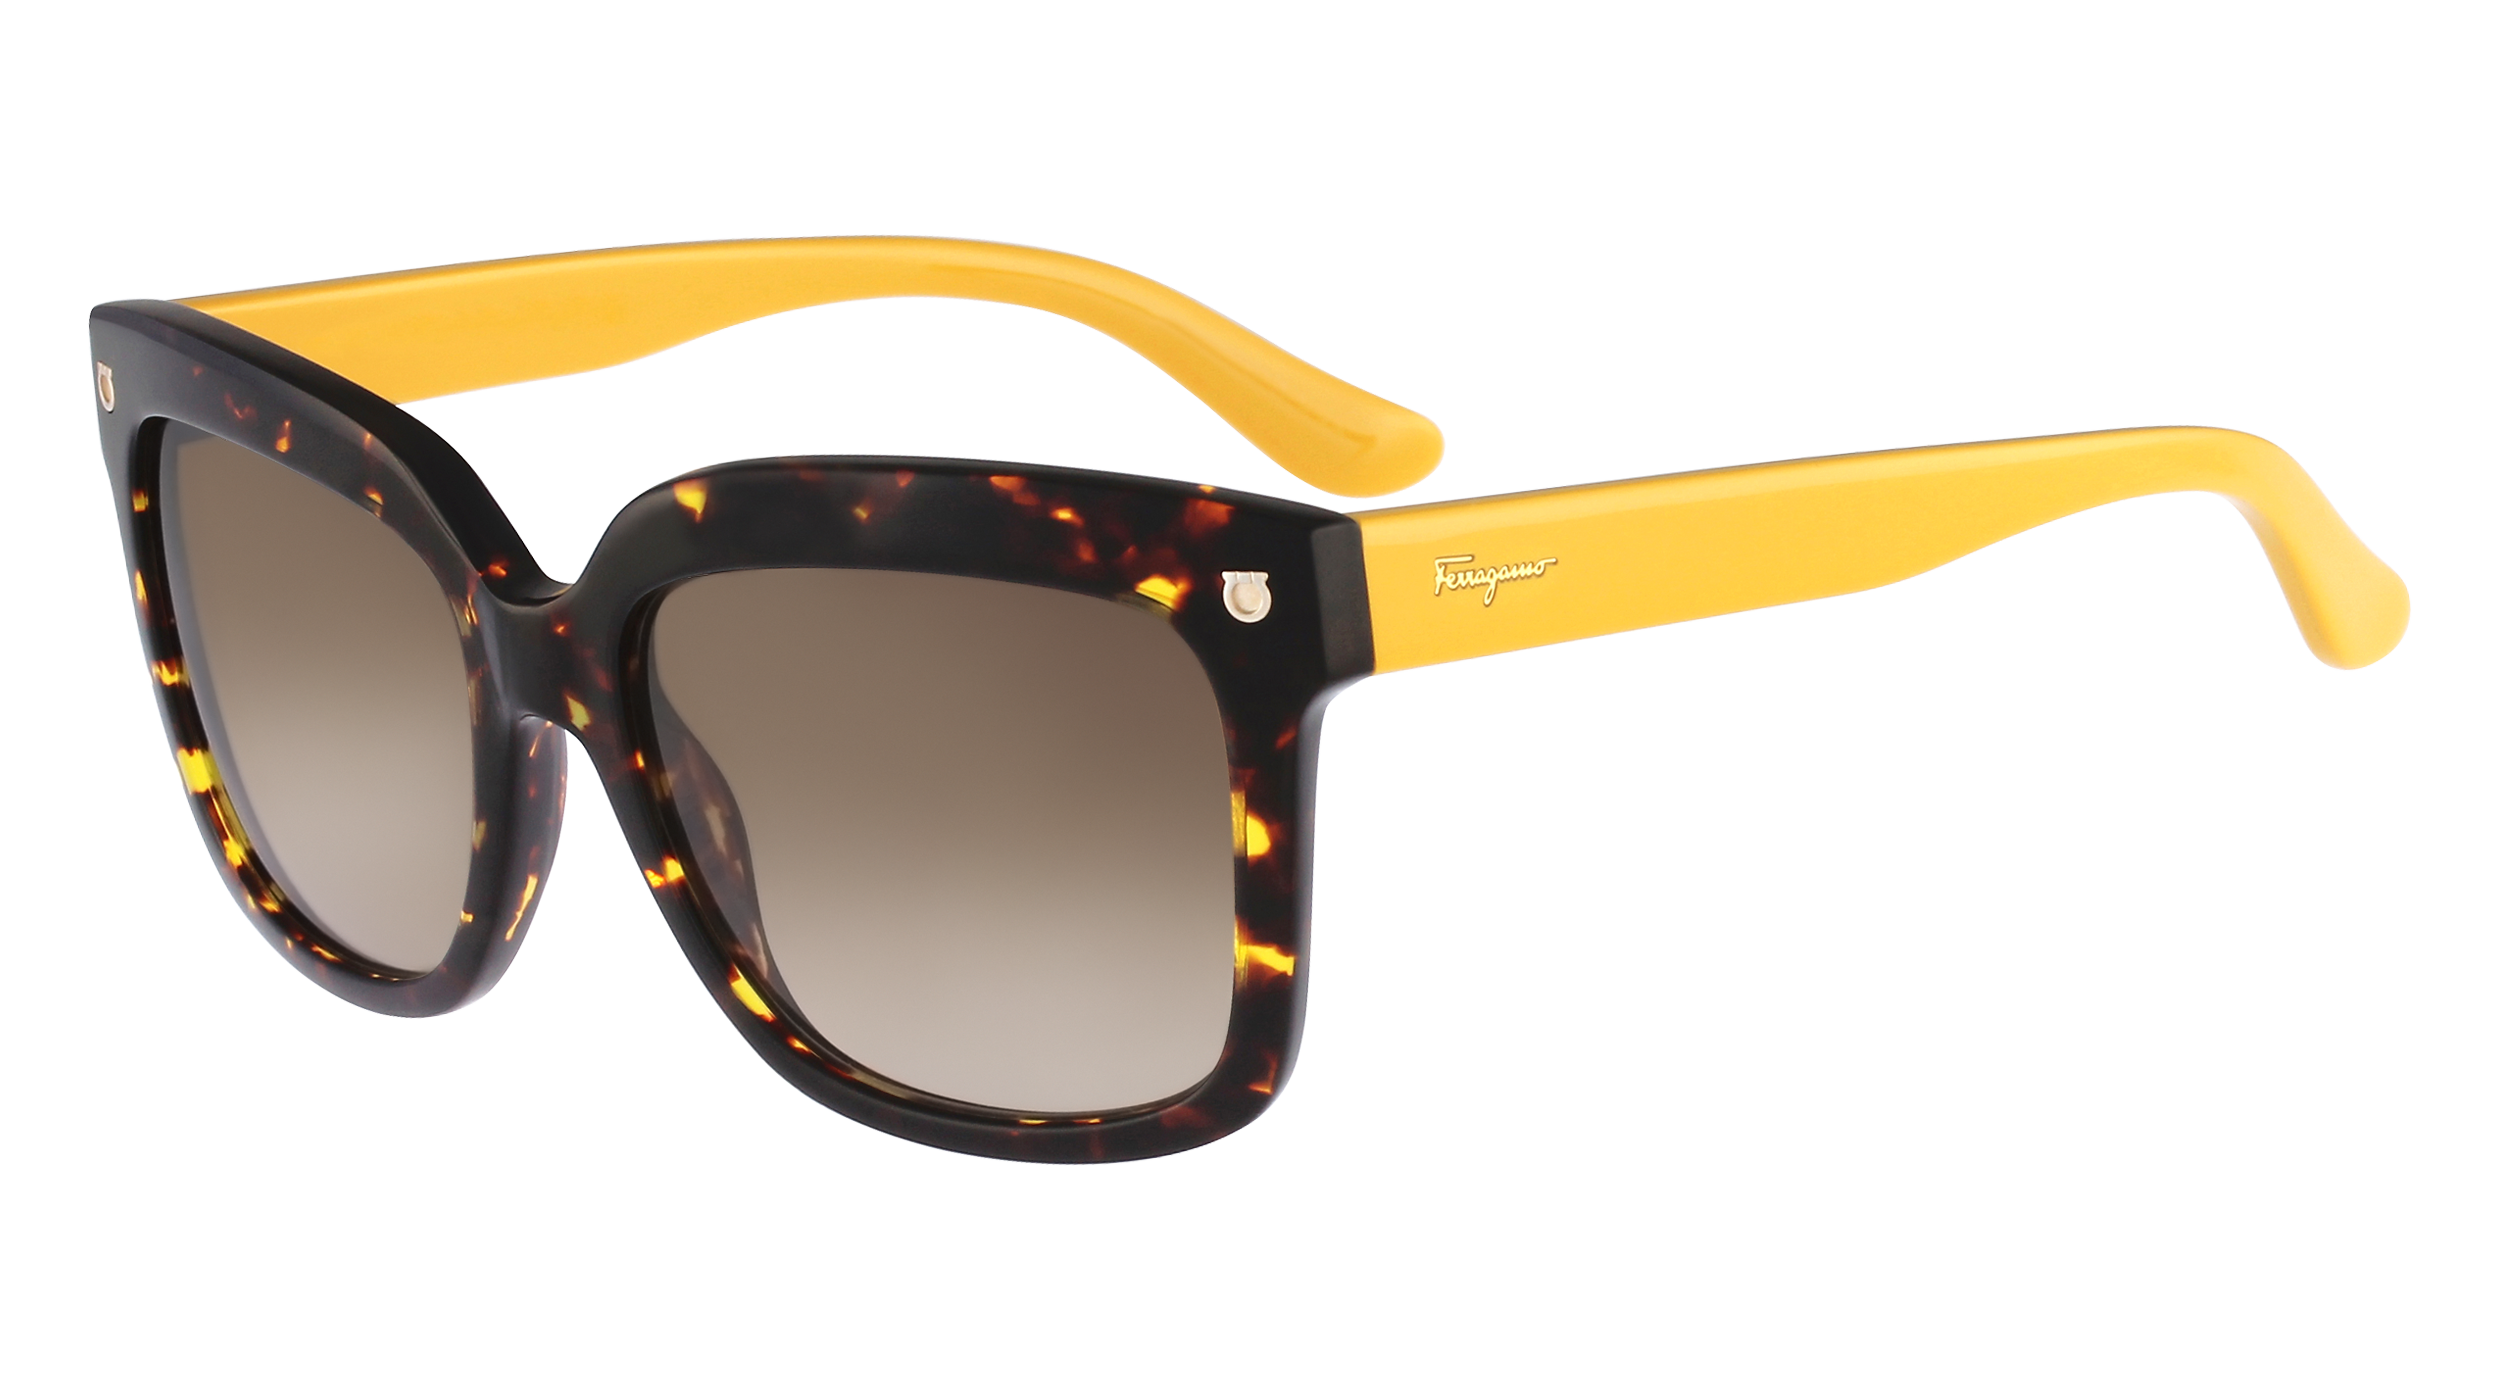 Salvatore Ferragamo Sunglasses AED 1,350